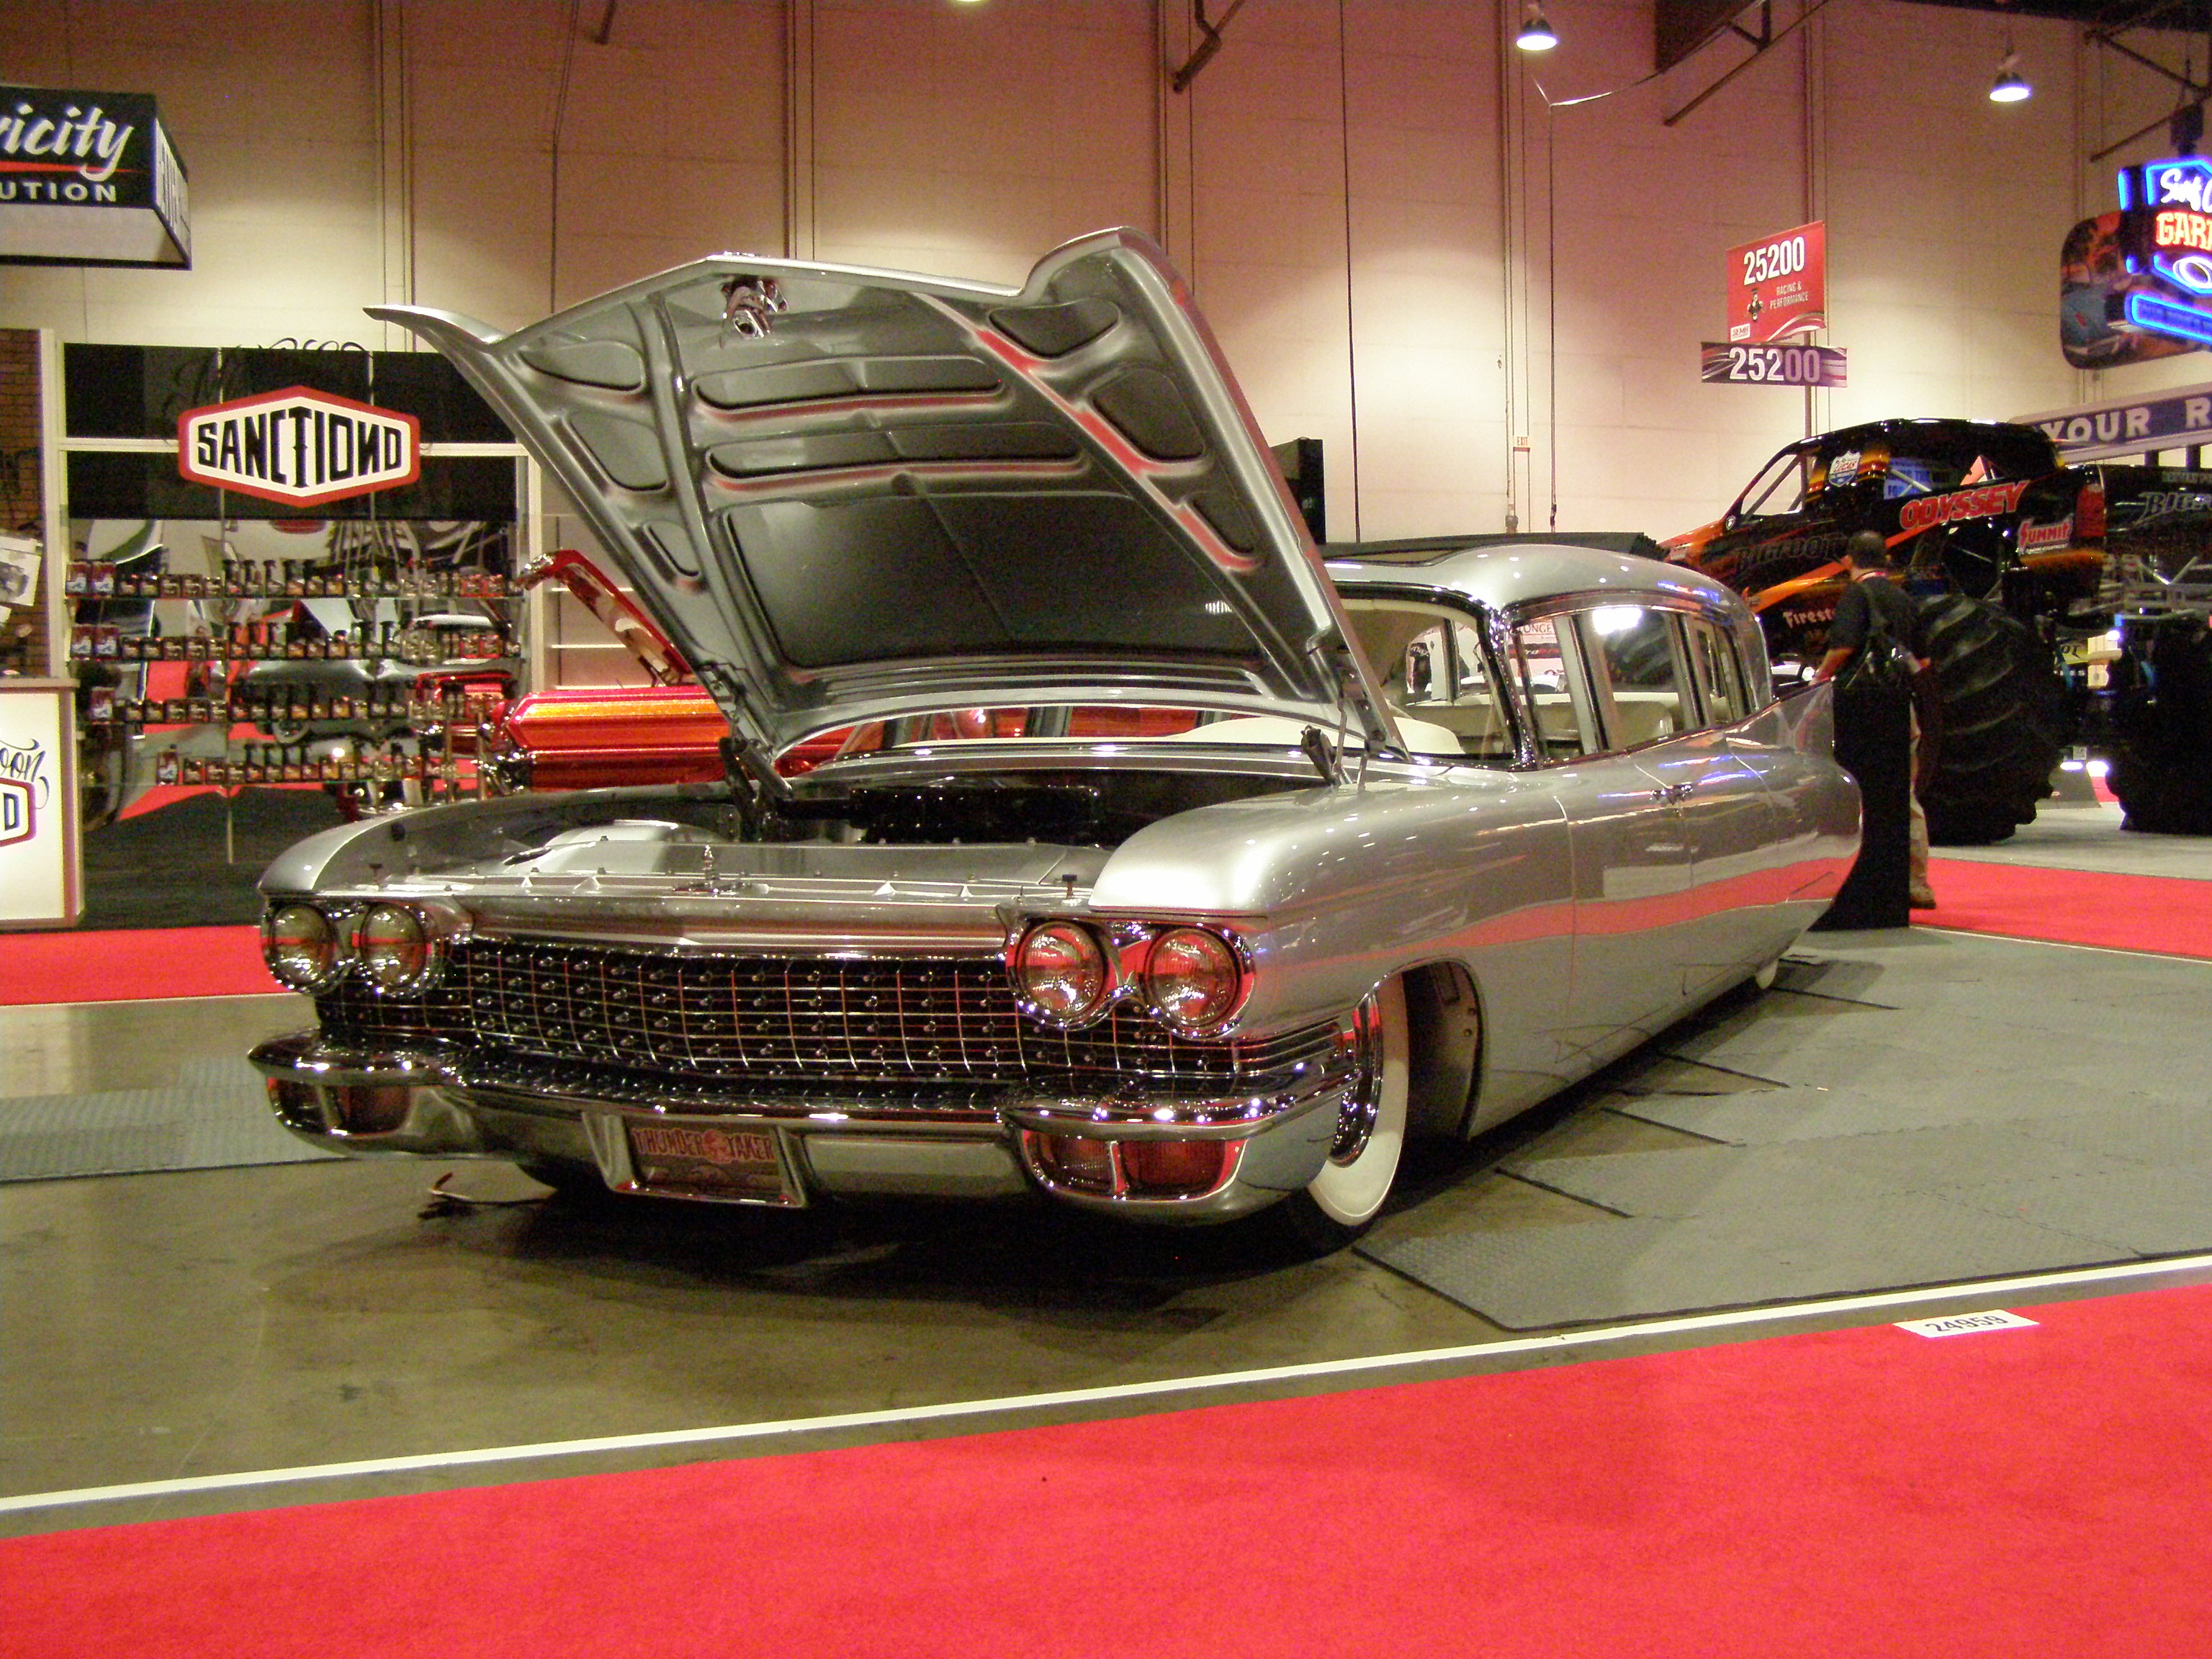 As seen at SEMA, Bryan Fuller's Thunder Taker now in Hot Rod Magazine